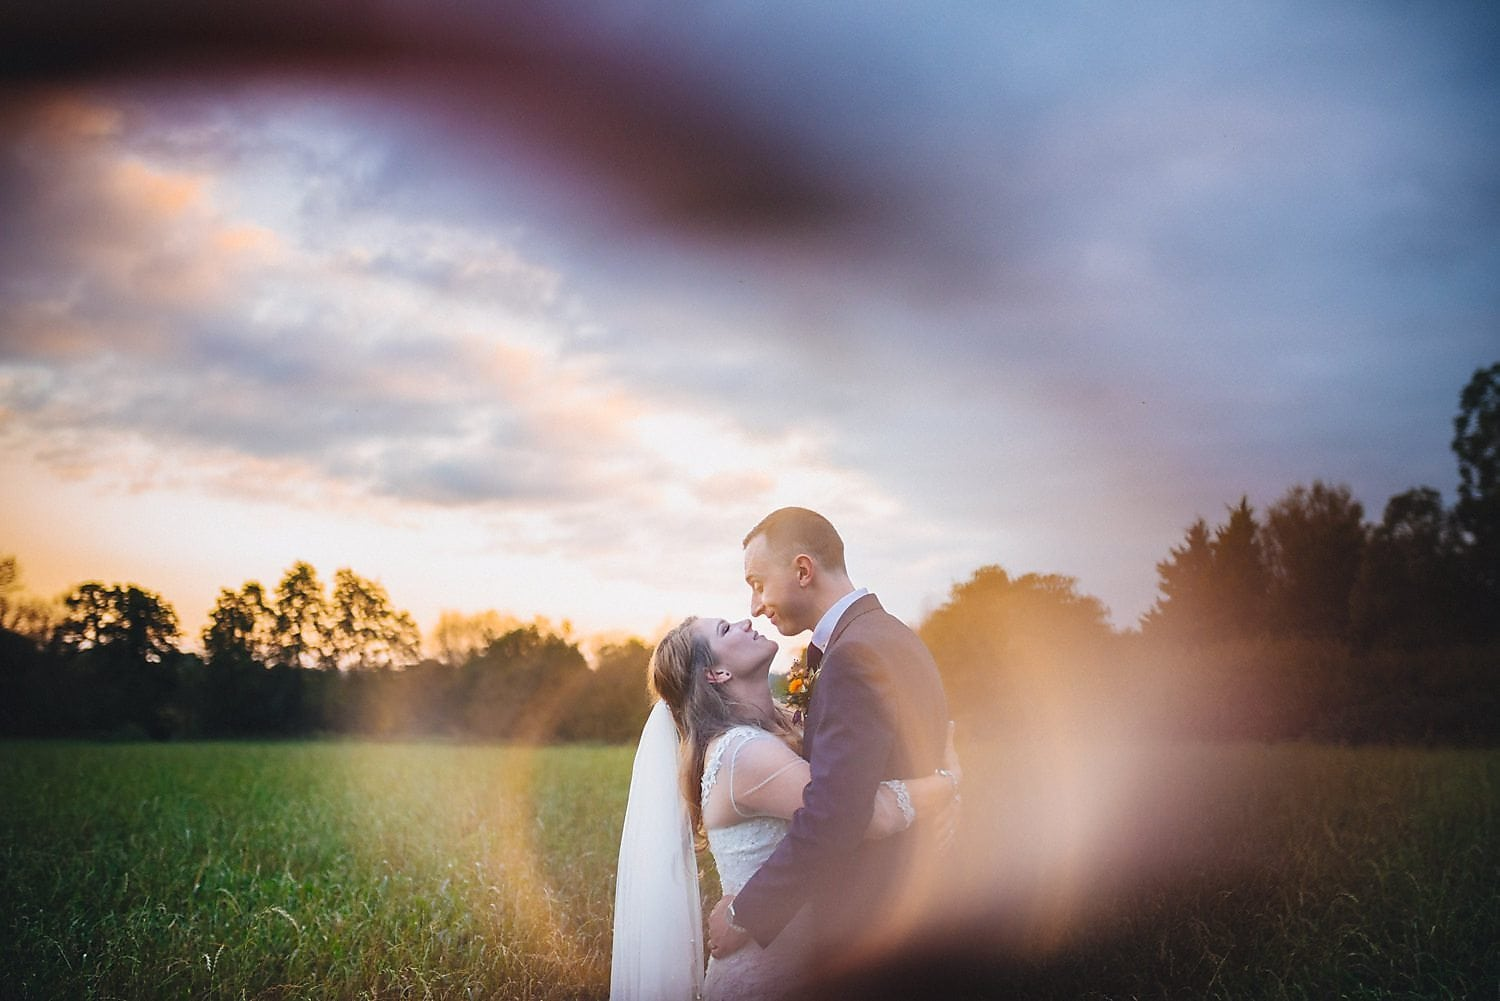 Bride and groom embrace in a field at sunset